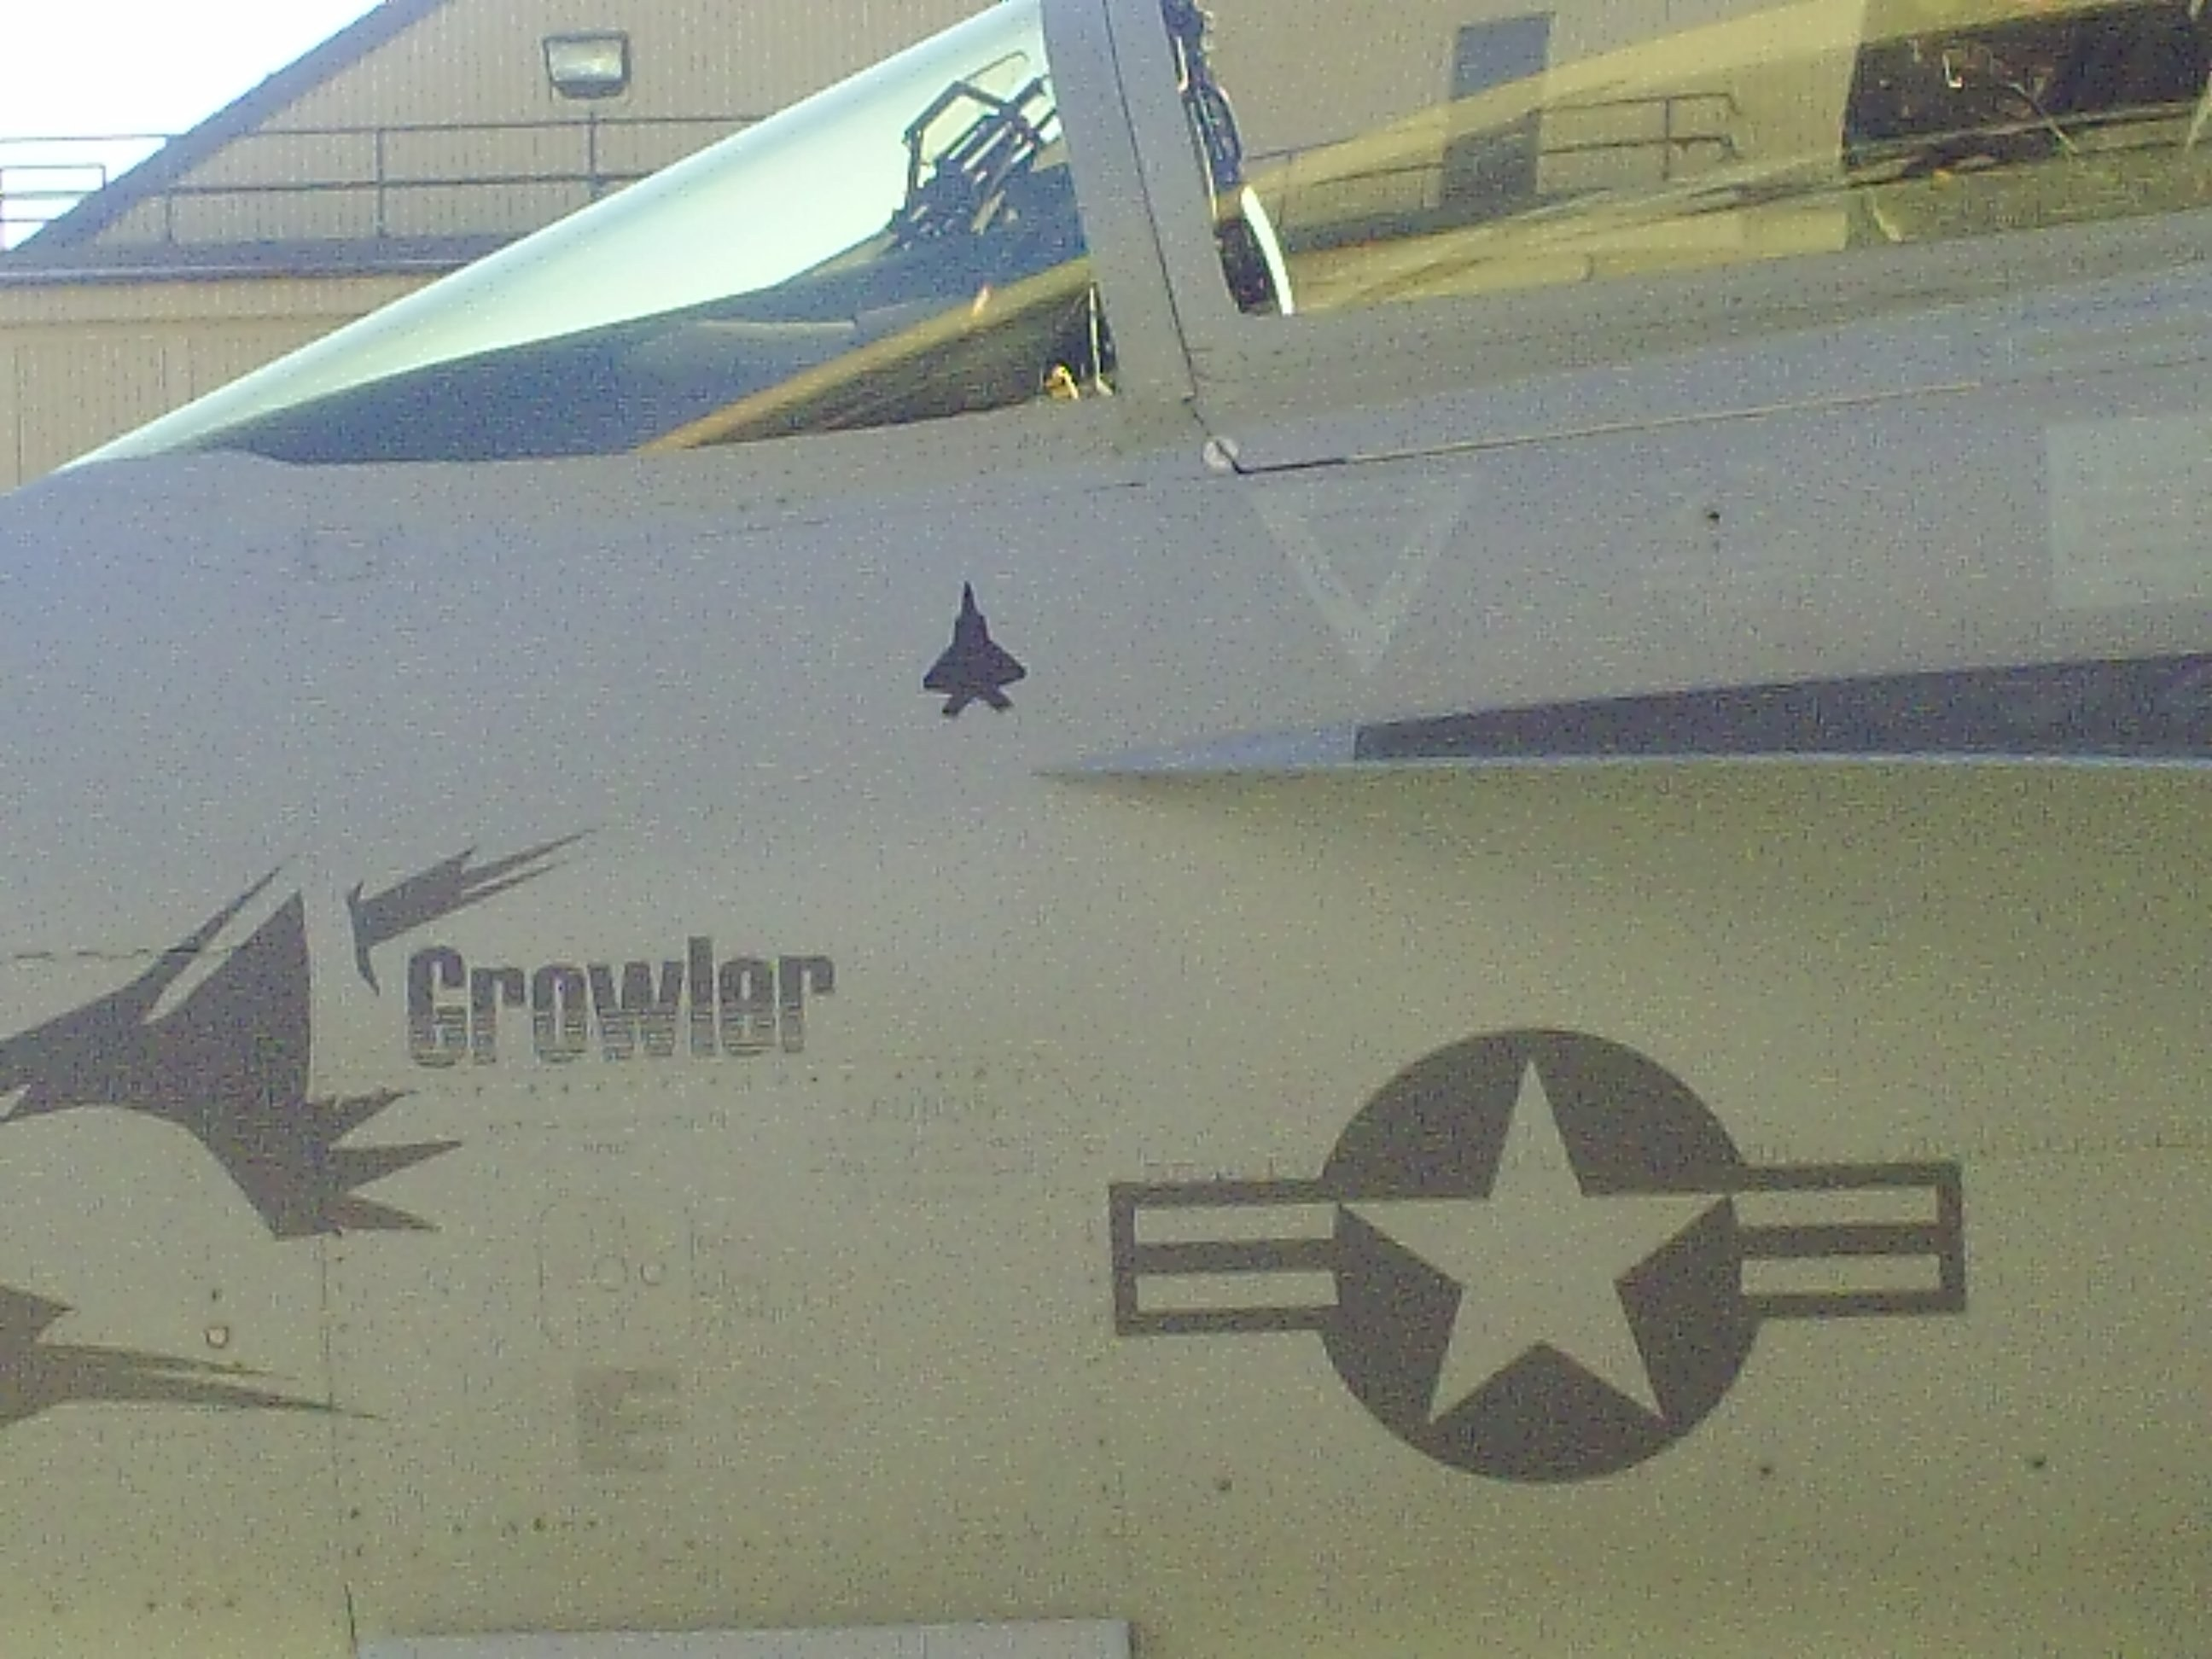 F-22 kill mark on growler